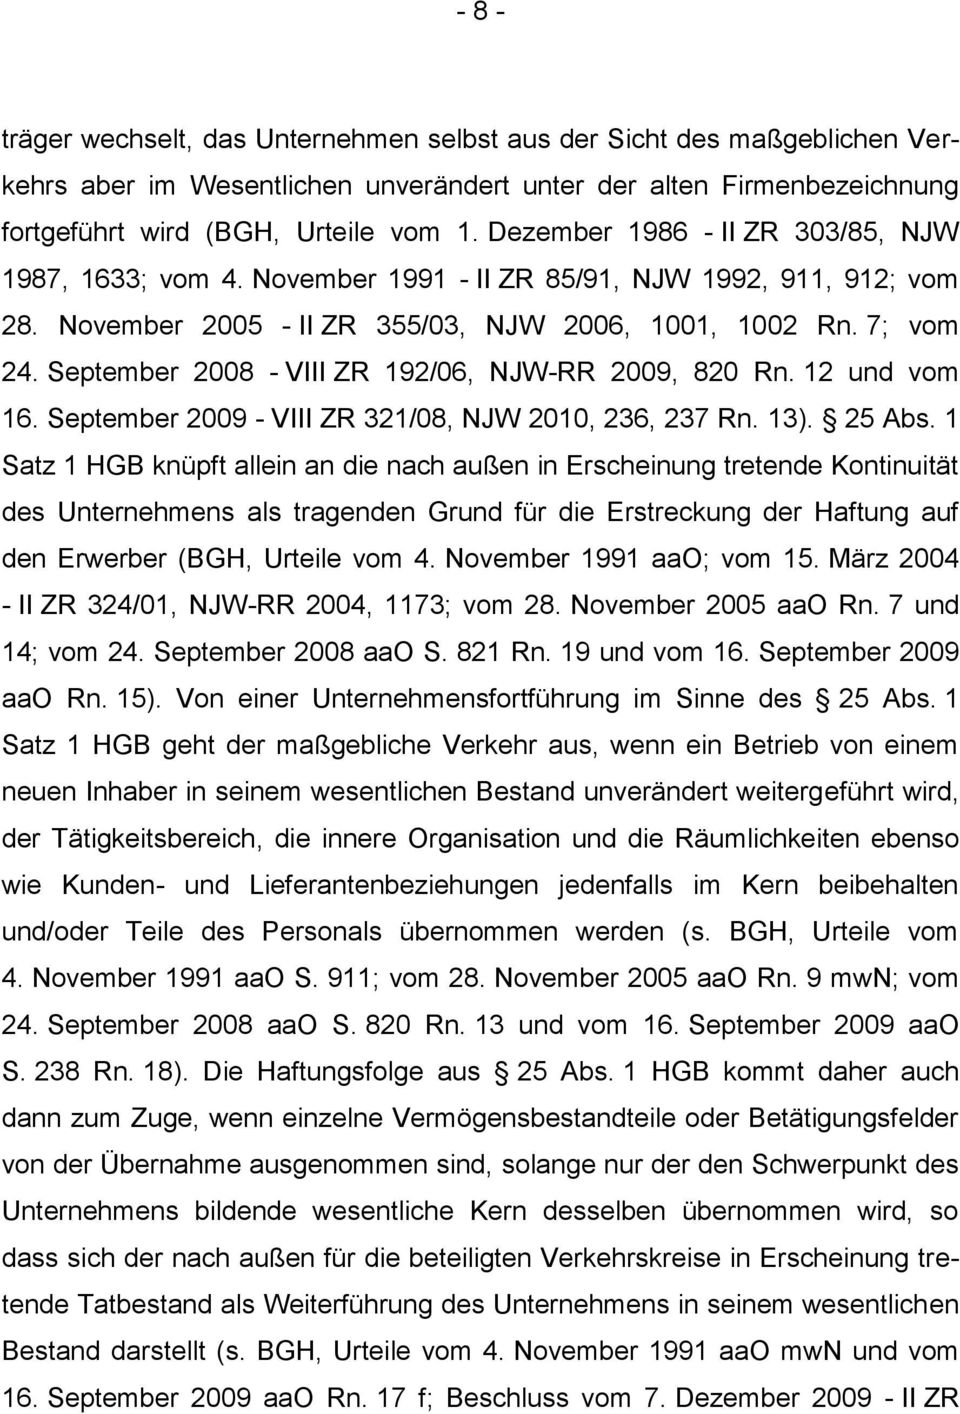 September 2008 - VIII ZR 192/06, NJW-RR 2009, 820 Rn. 12 und vom 16. September 2009 - VIII ZR 321/08, NJW 2010, 236, 237 Rn. 13). 25 Abs.